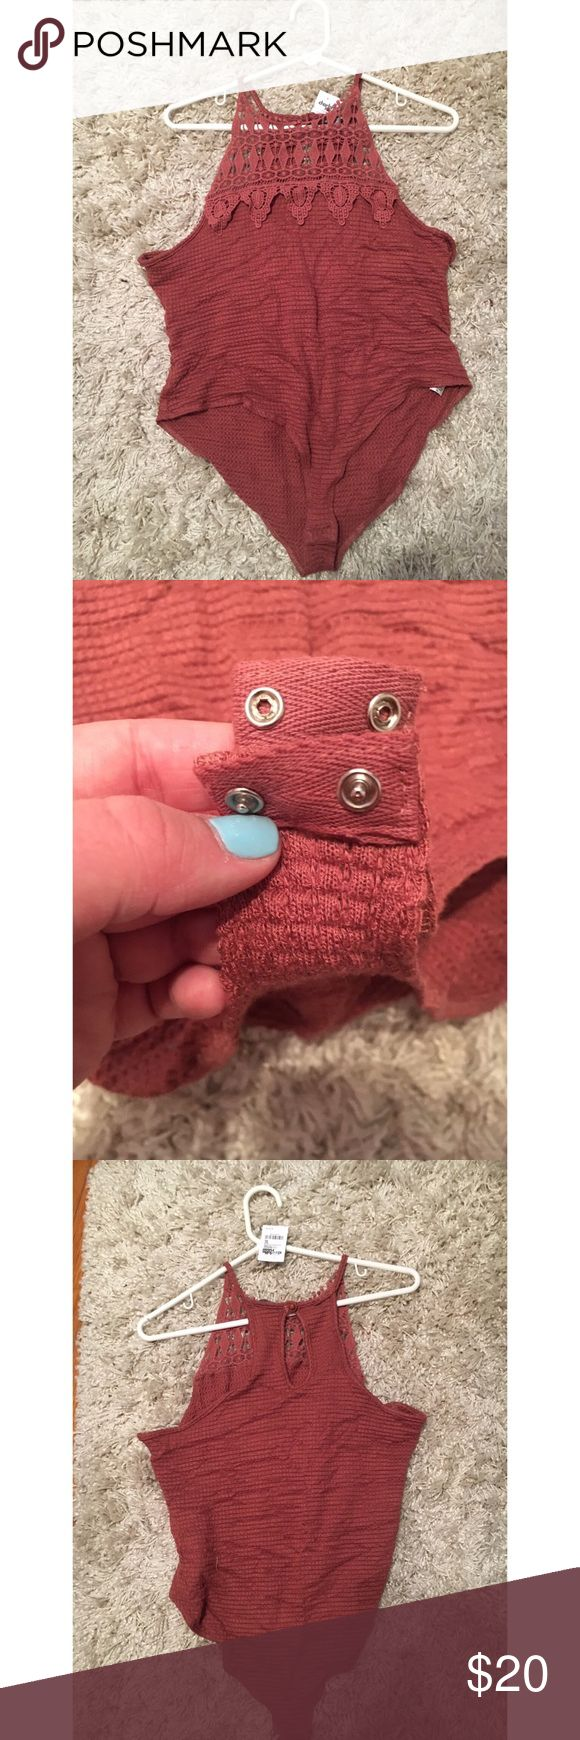 Charlotte Russe Bodysuit Beautiful Charlotte Russe body suit. Snaps at the crotch with reliable snaps. Was recently bought at the store. It is brand new with tags. Size: XL Other